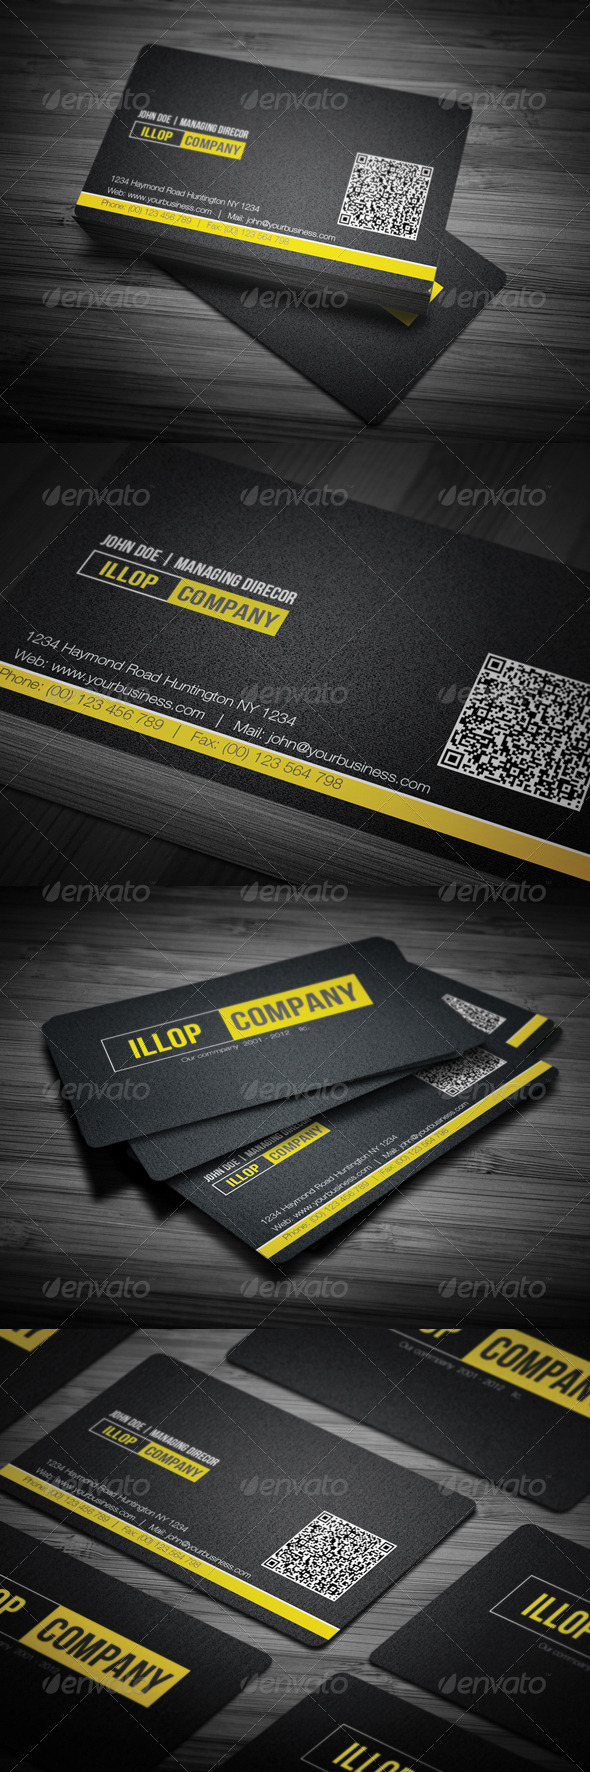 GraphicRiver Black Corporate Business Card 3555679